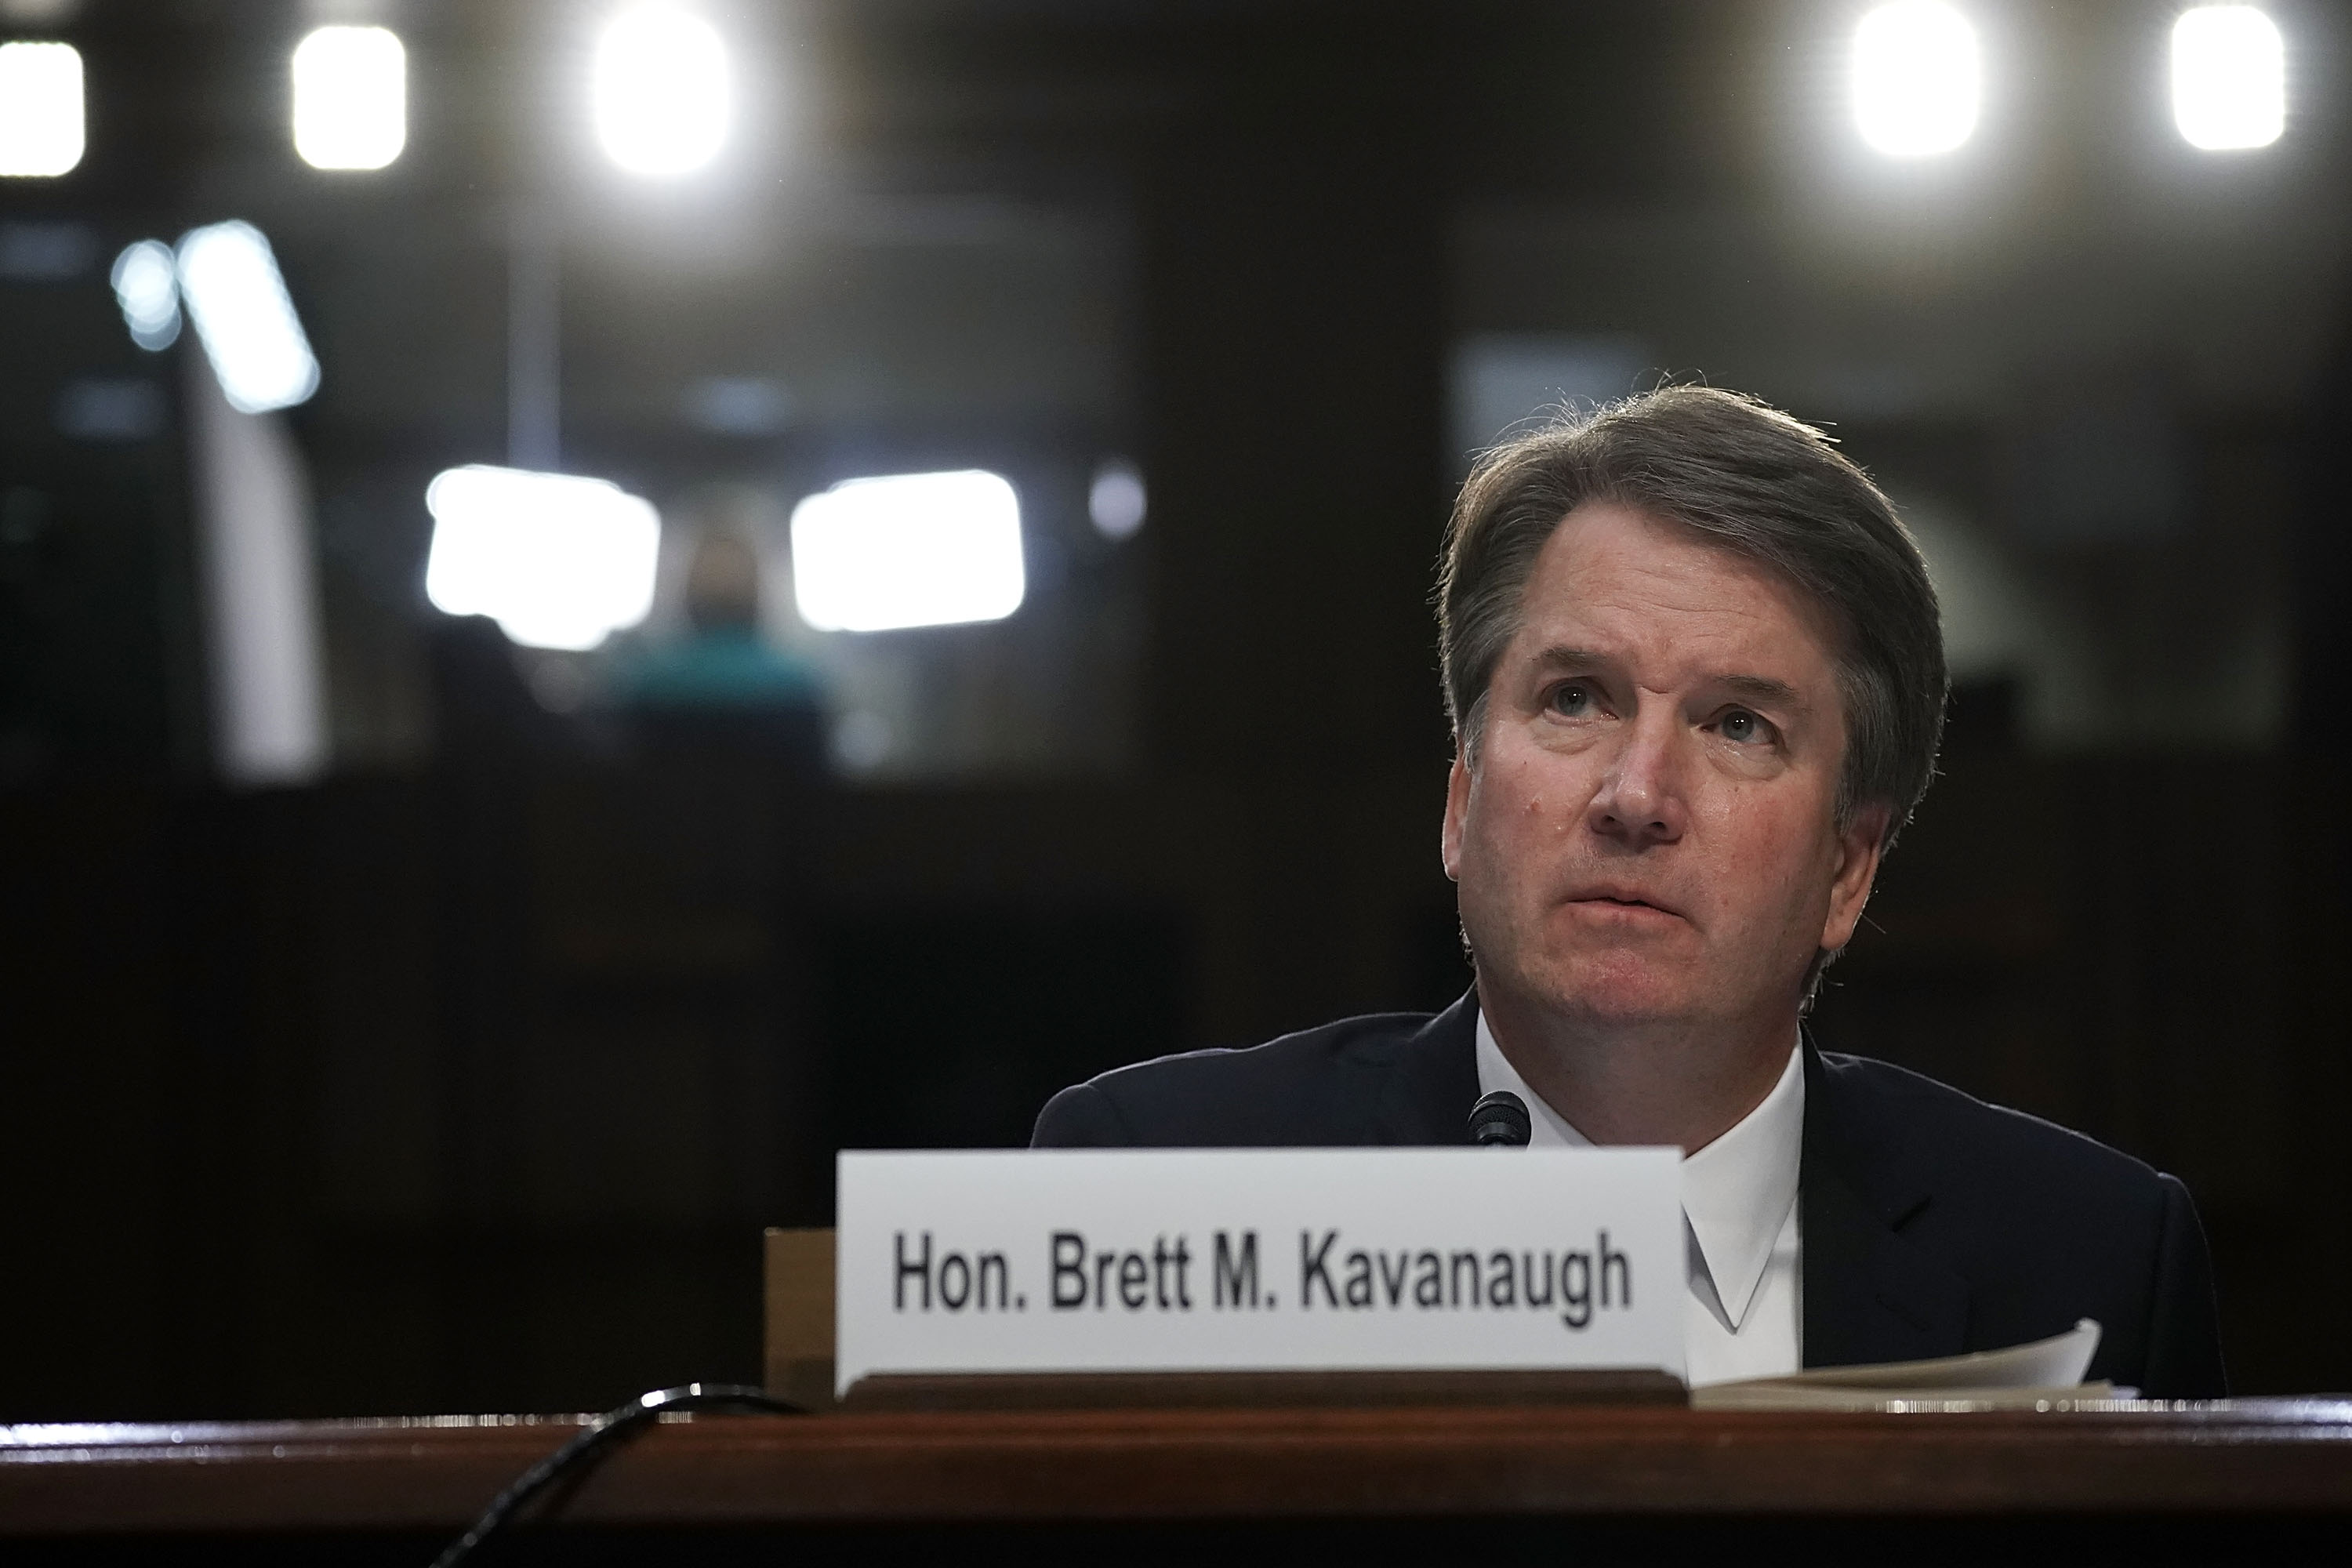 Supreme Court nominee Judge Brett Kavanaugh testifies before the Senate Judiciary Committee on Sept. 6, 2018 in Washington, DC.